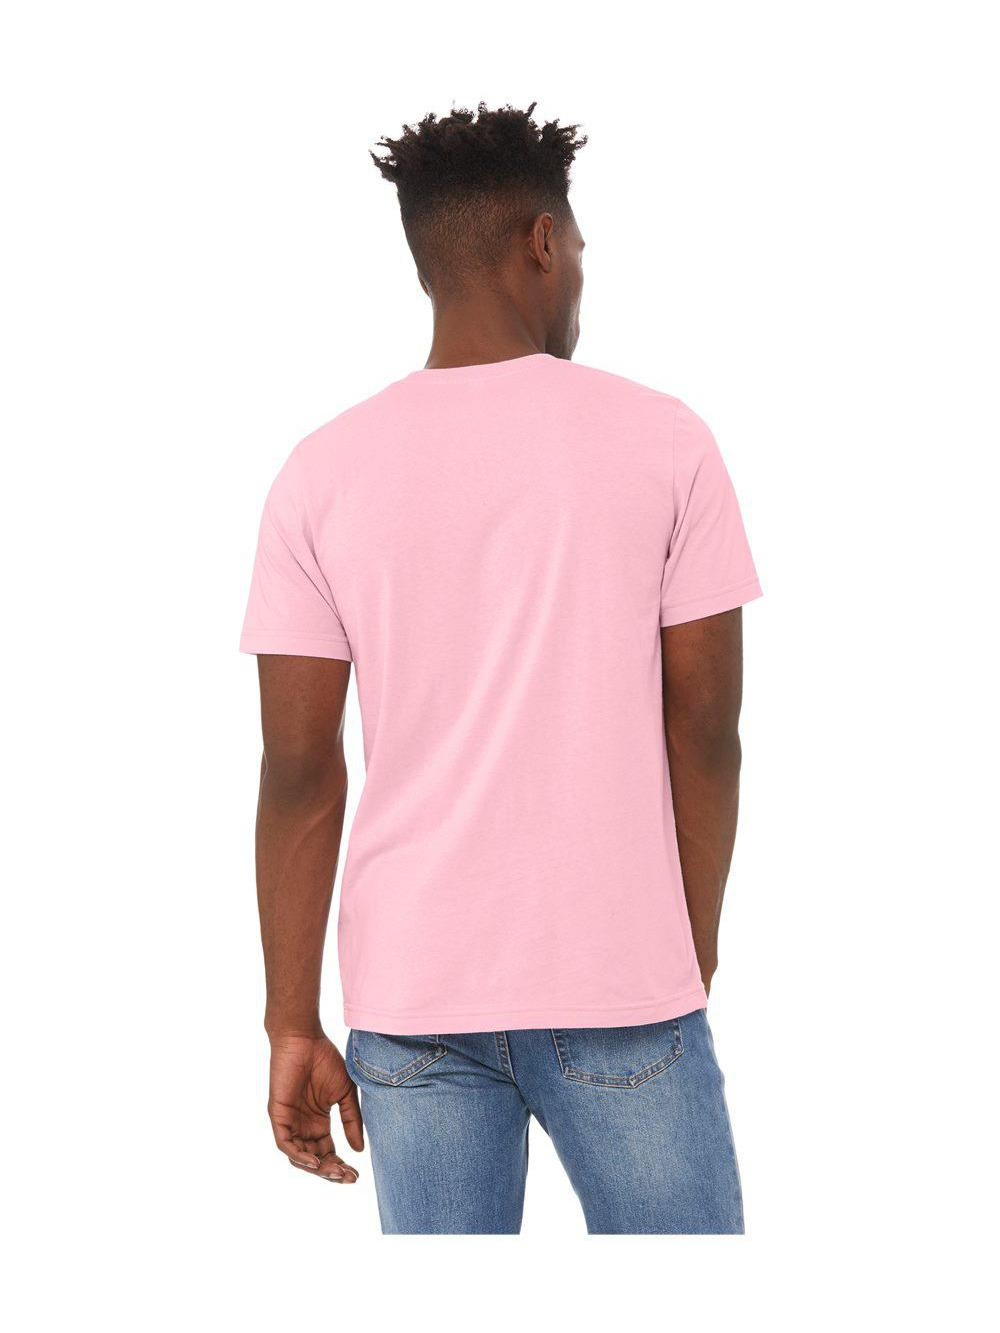 Bella-Canvas-Unisex-Short-Sleeve-Jersey-Tee-3001 thumbnail 67